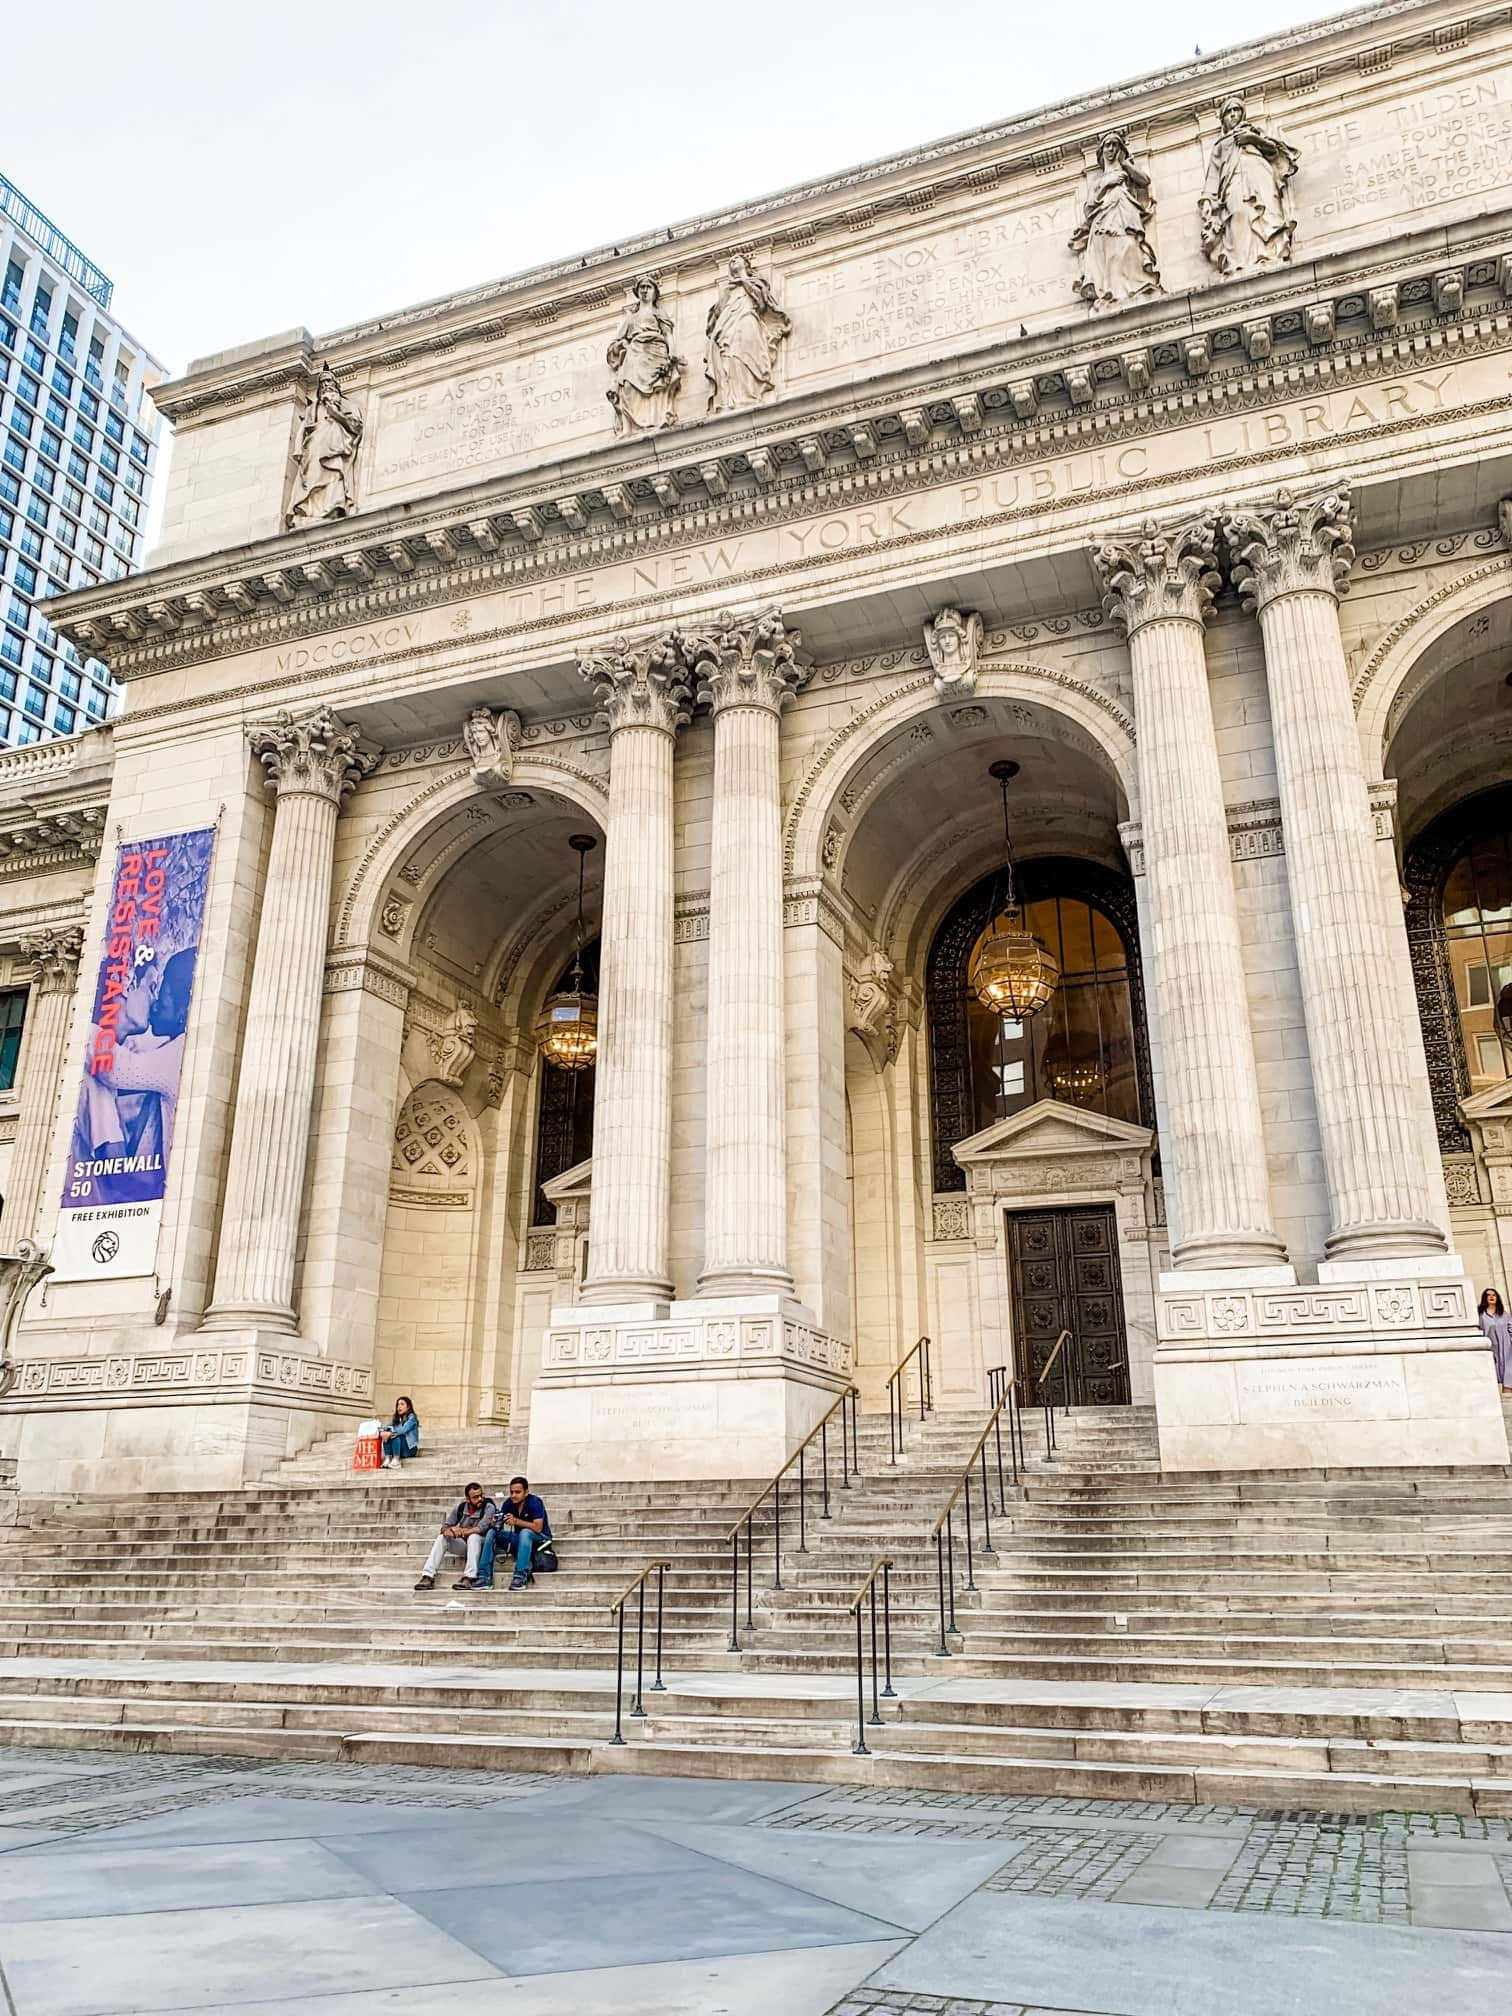 Outside of the New York public library